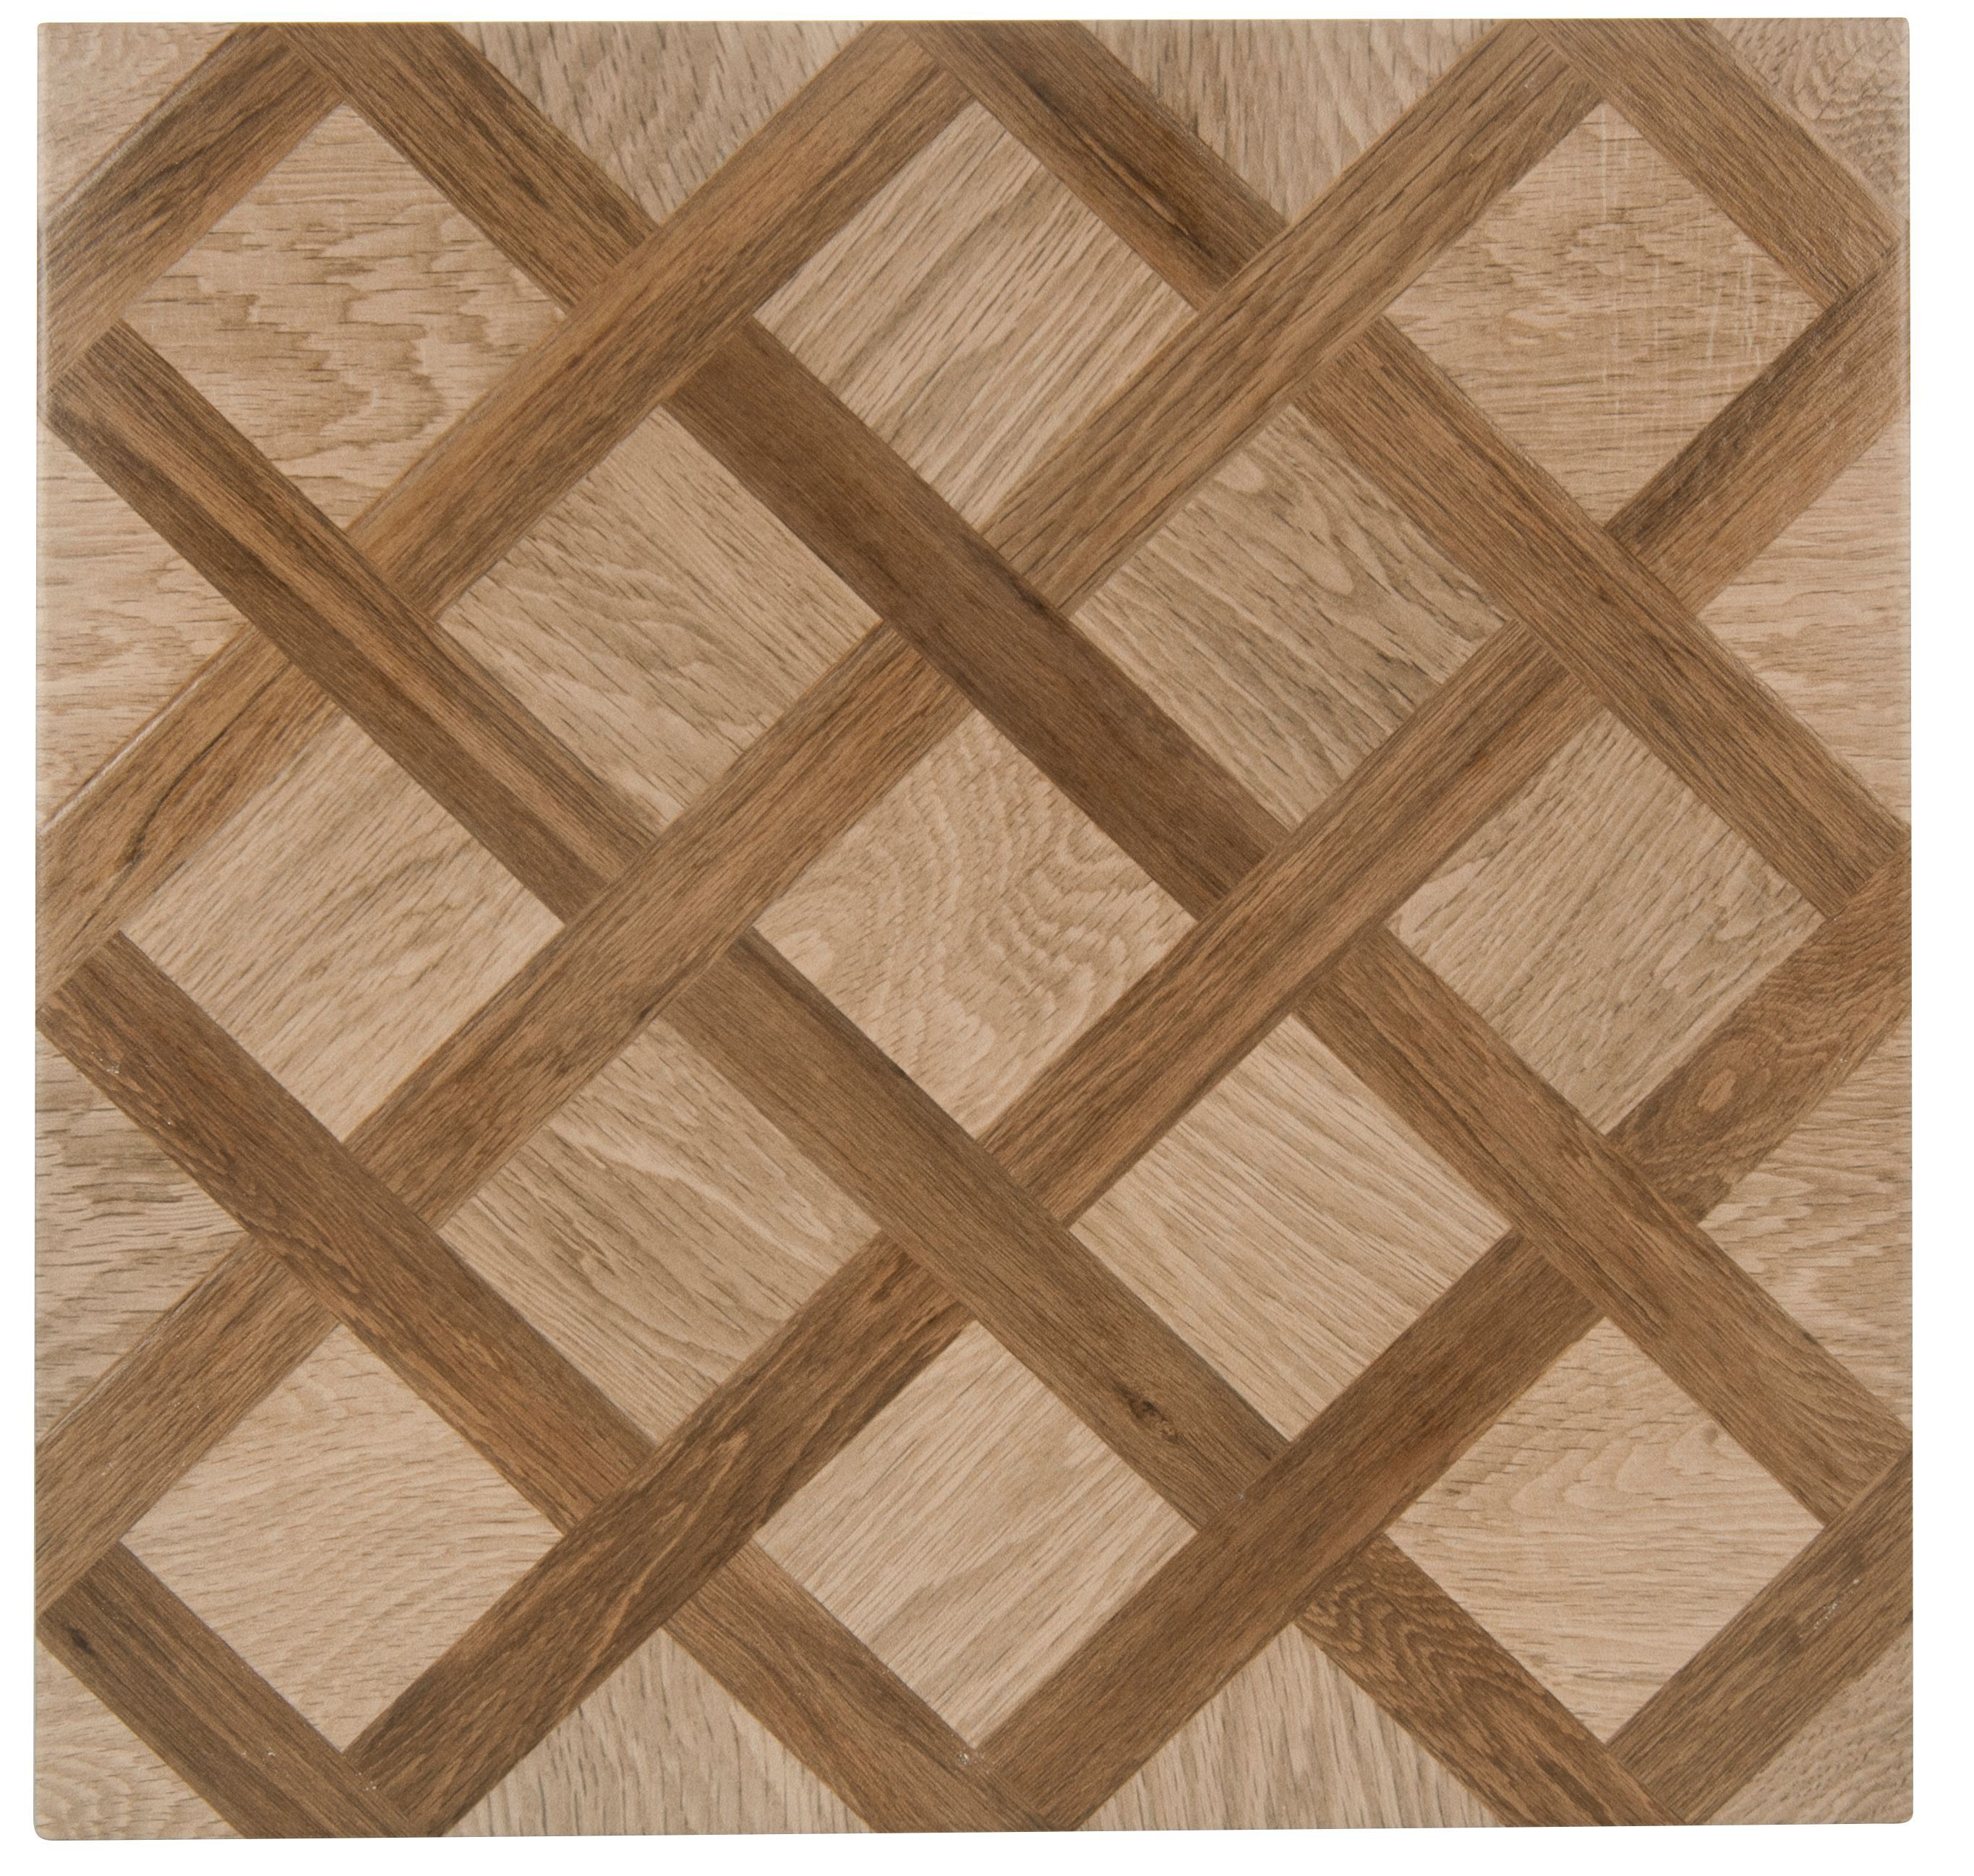 Chalet cream oak effect porcelain floor tile pack of 5 l450mm chalet cream oak effect porcelain floor tile pack of 5 l450mm w450mm departments diy at bq dailygadgetfo Image collections